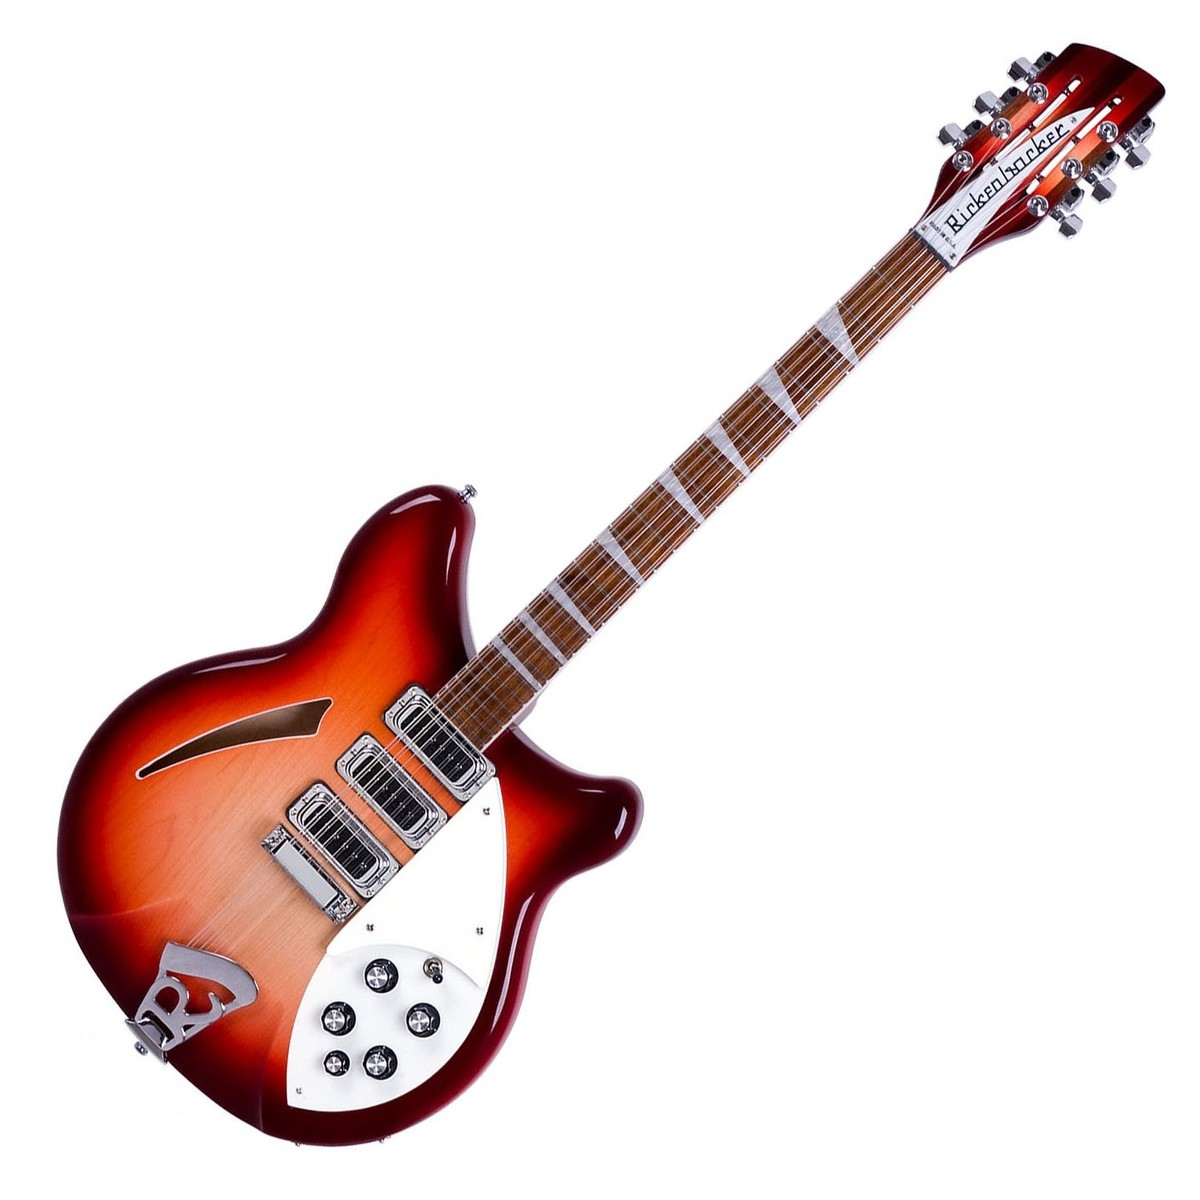 rickenbacker 370 12 12 string electric guitar fireglo at. Black Bedroom Furniture Sets. Home Design Ideas